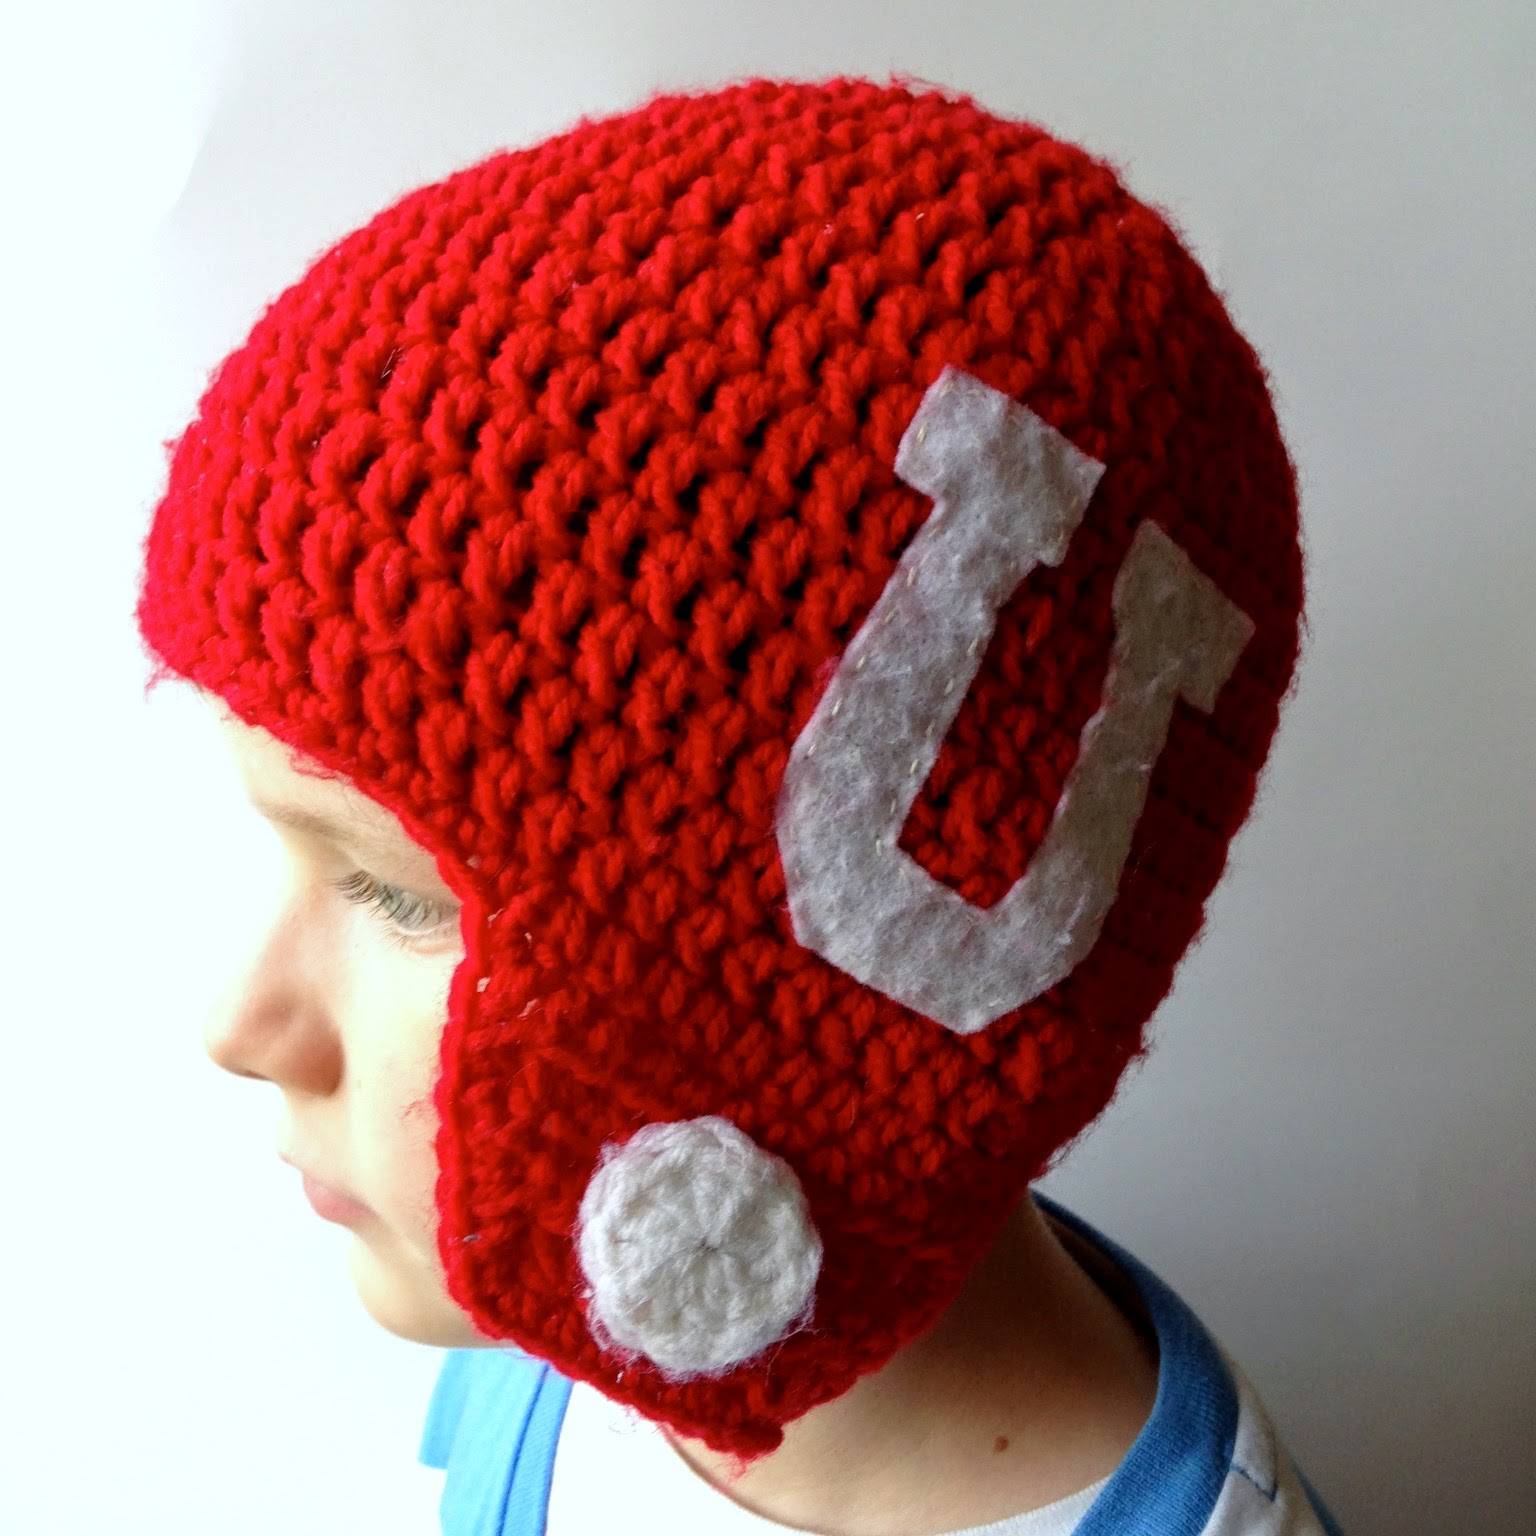 Free crochet pattern football helmet hat manet for 5 little monsters crocheted football helmet hats free bankloansurffo Choice Image